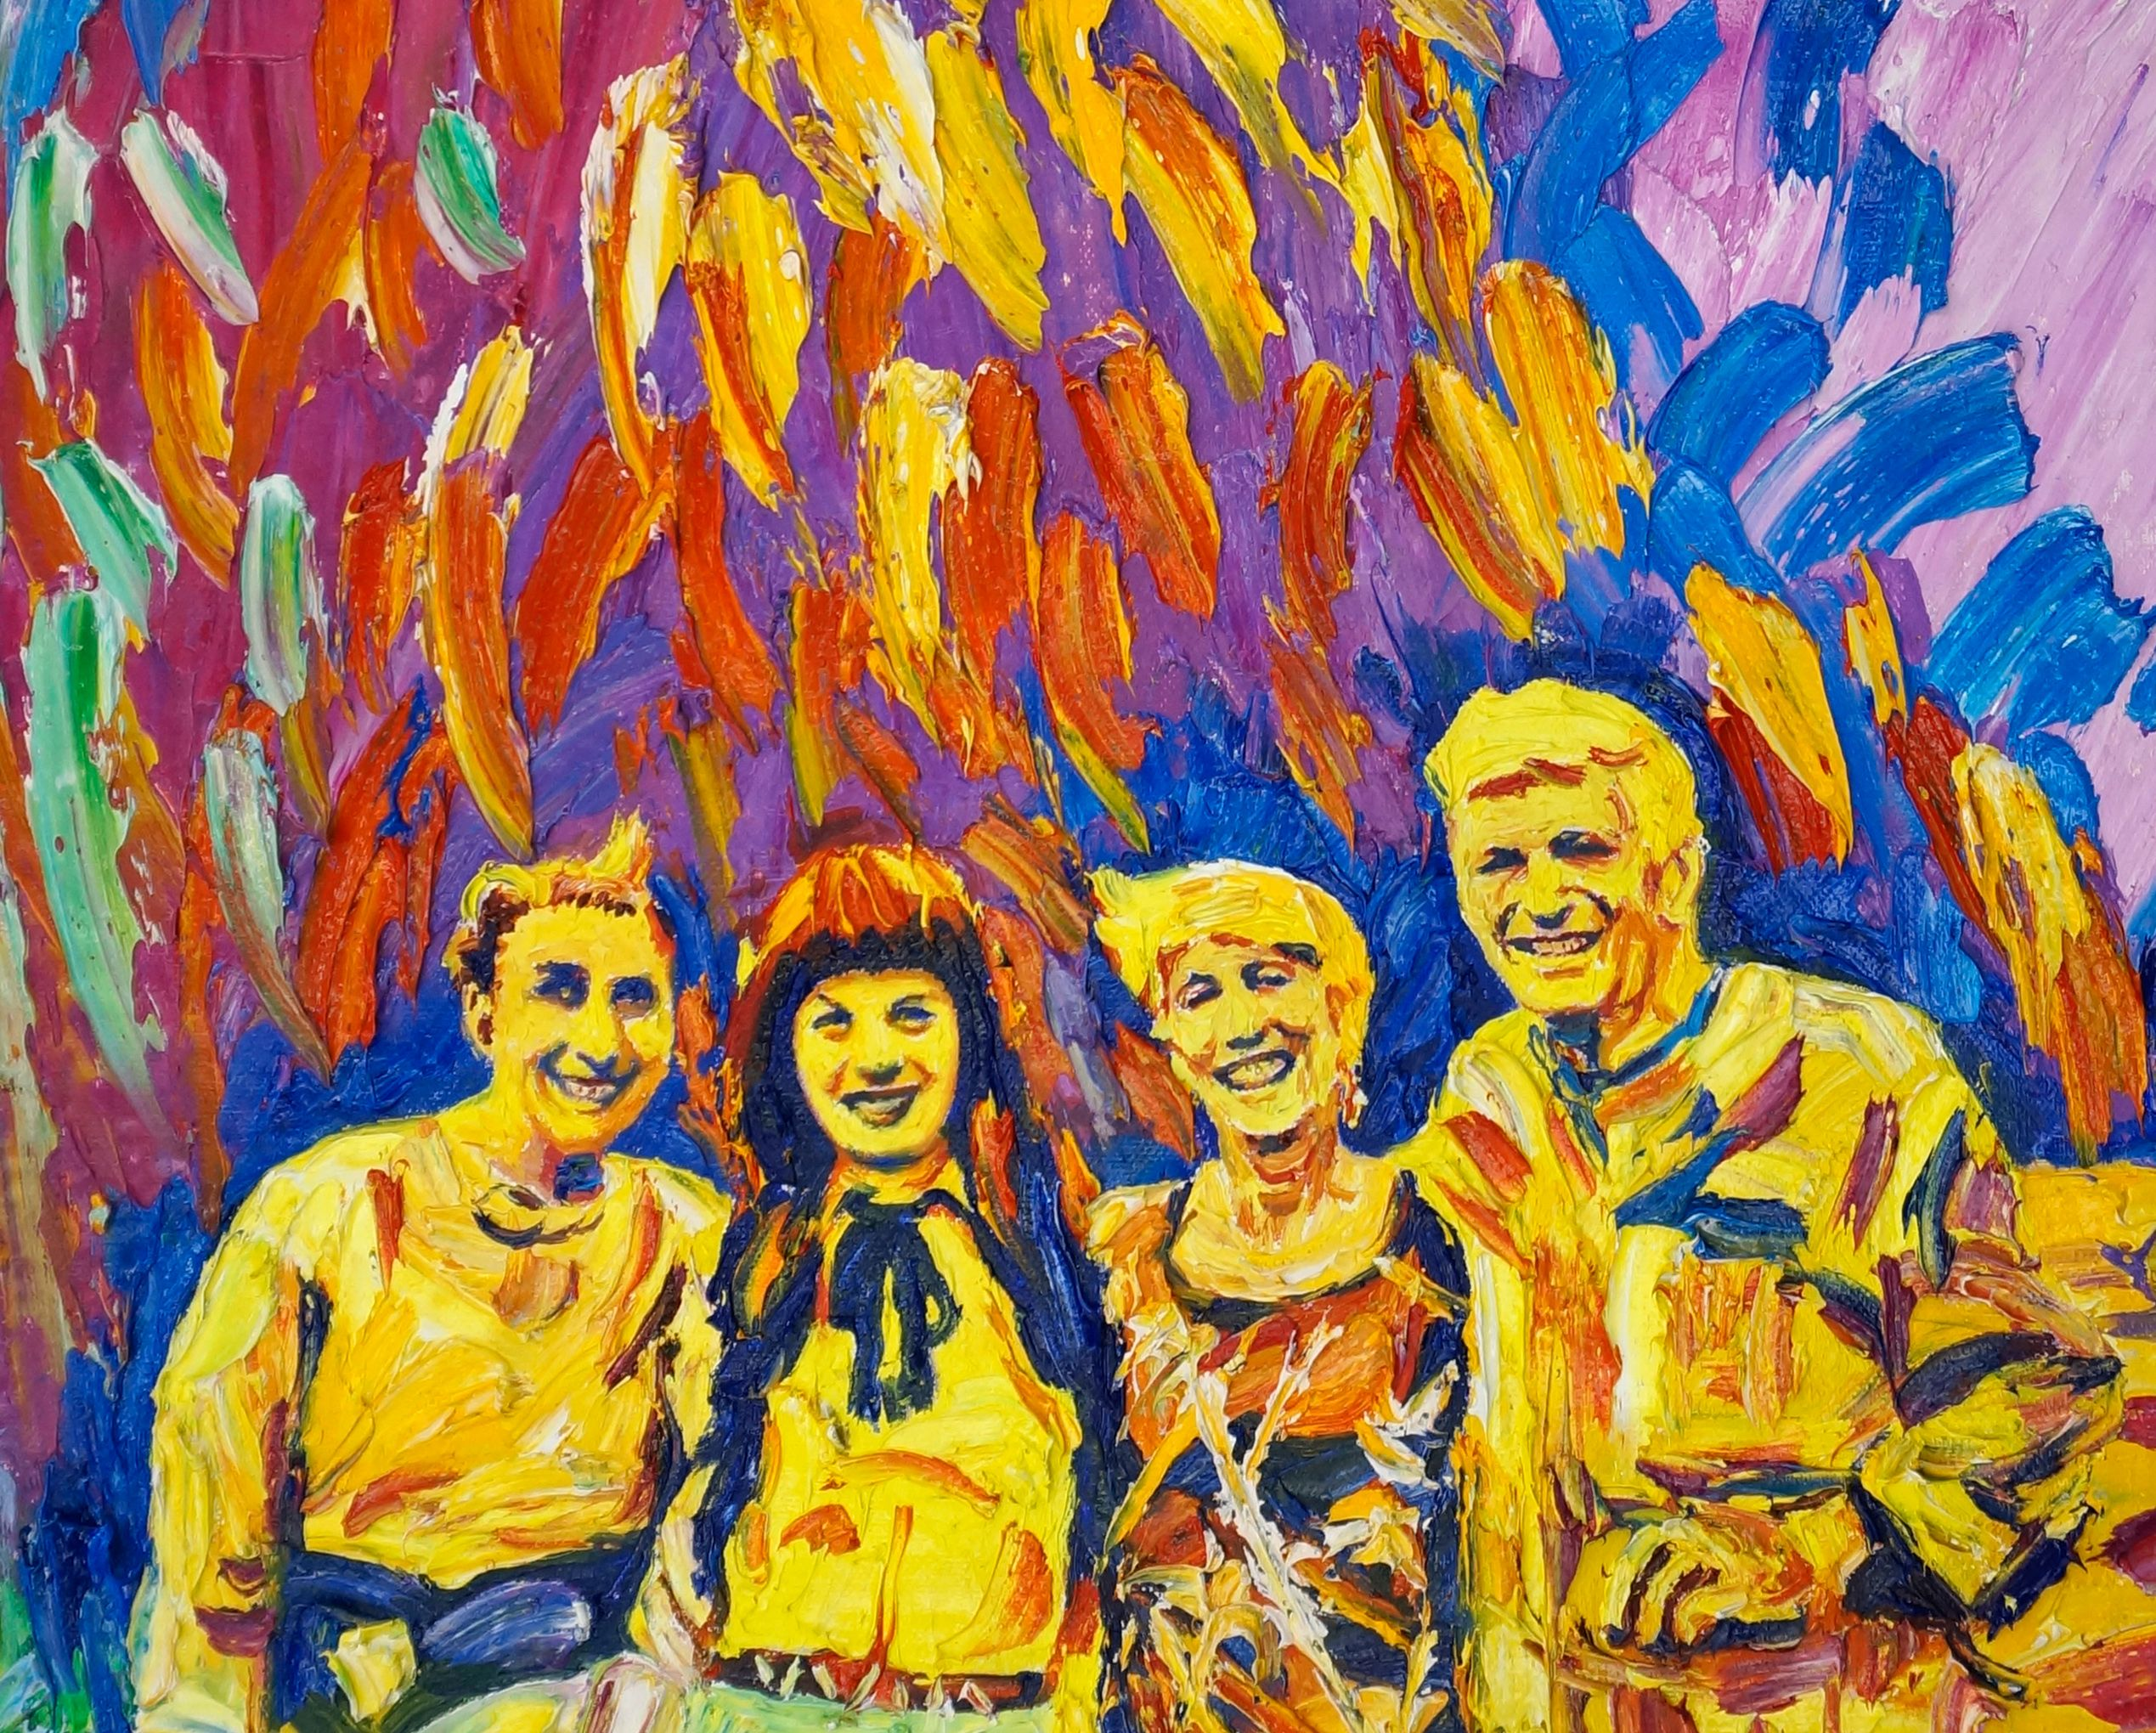 Just Painted This Is A Funky Pop Art Oil Painting Family